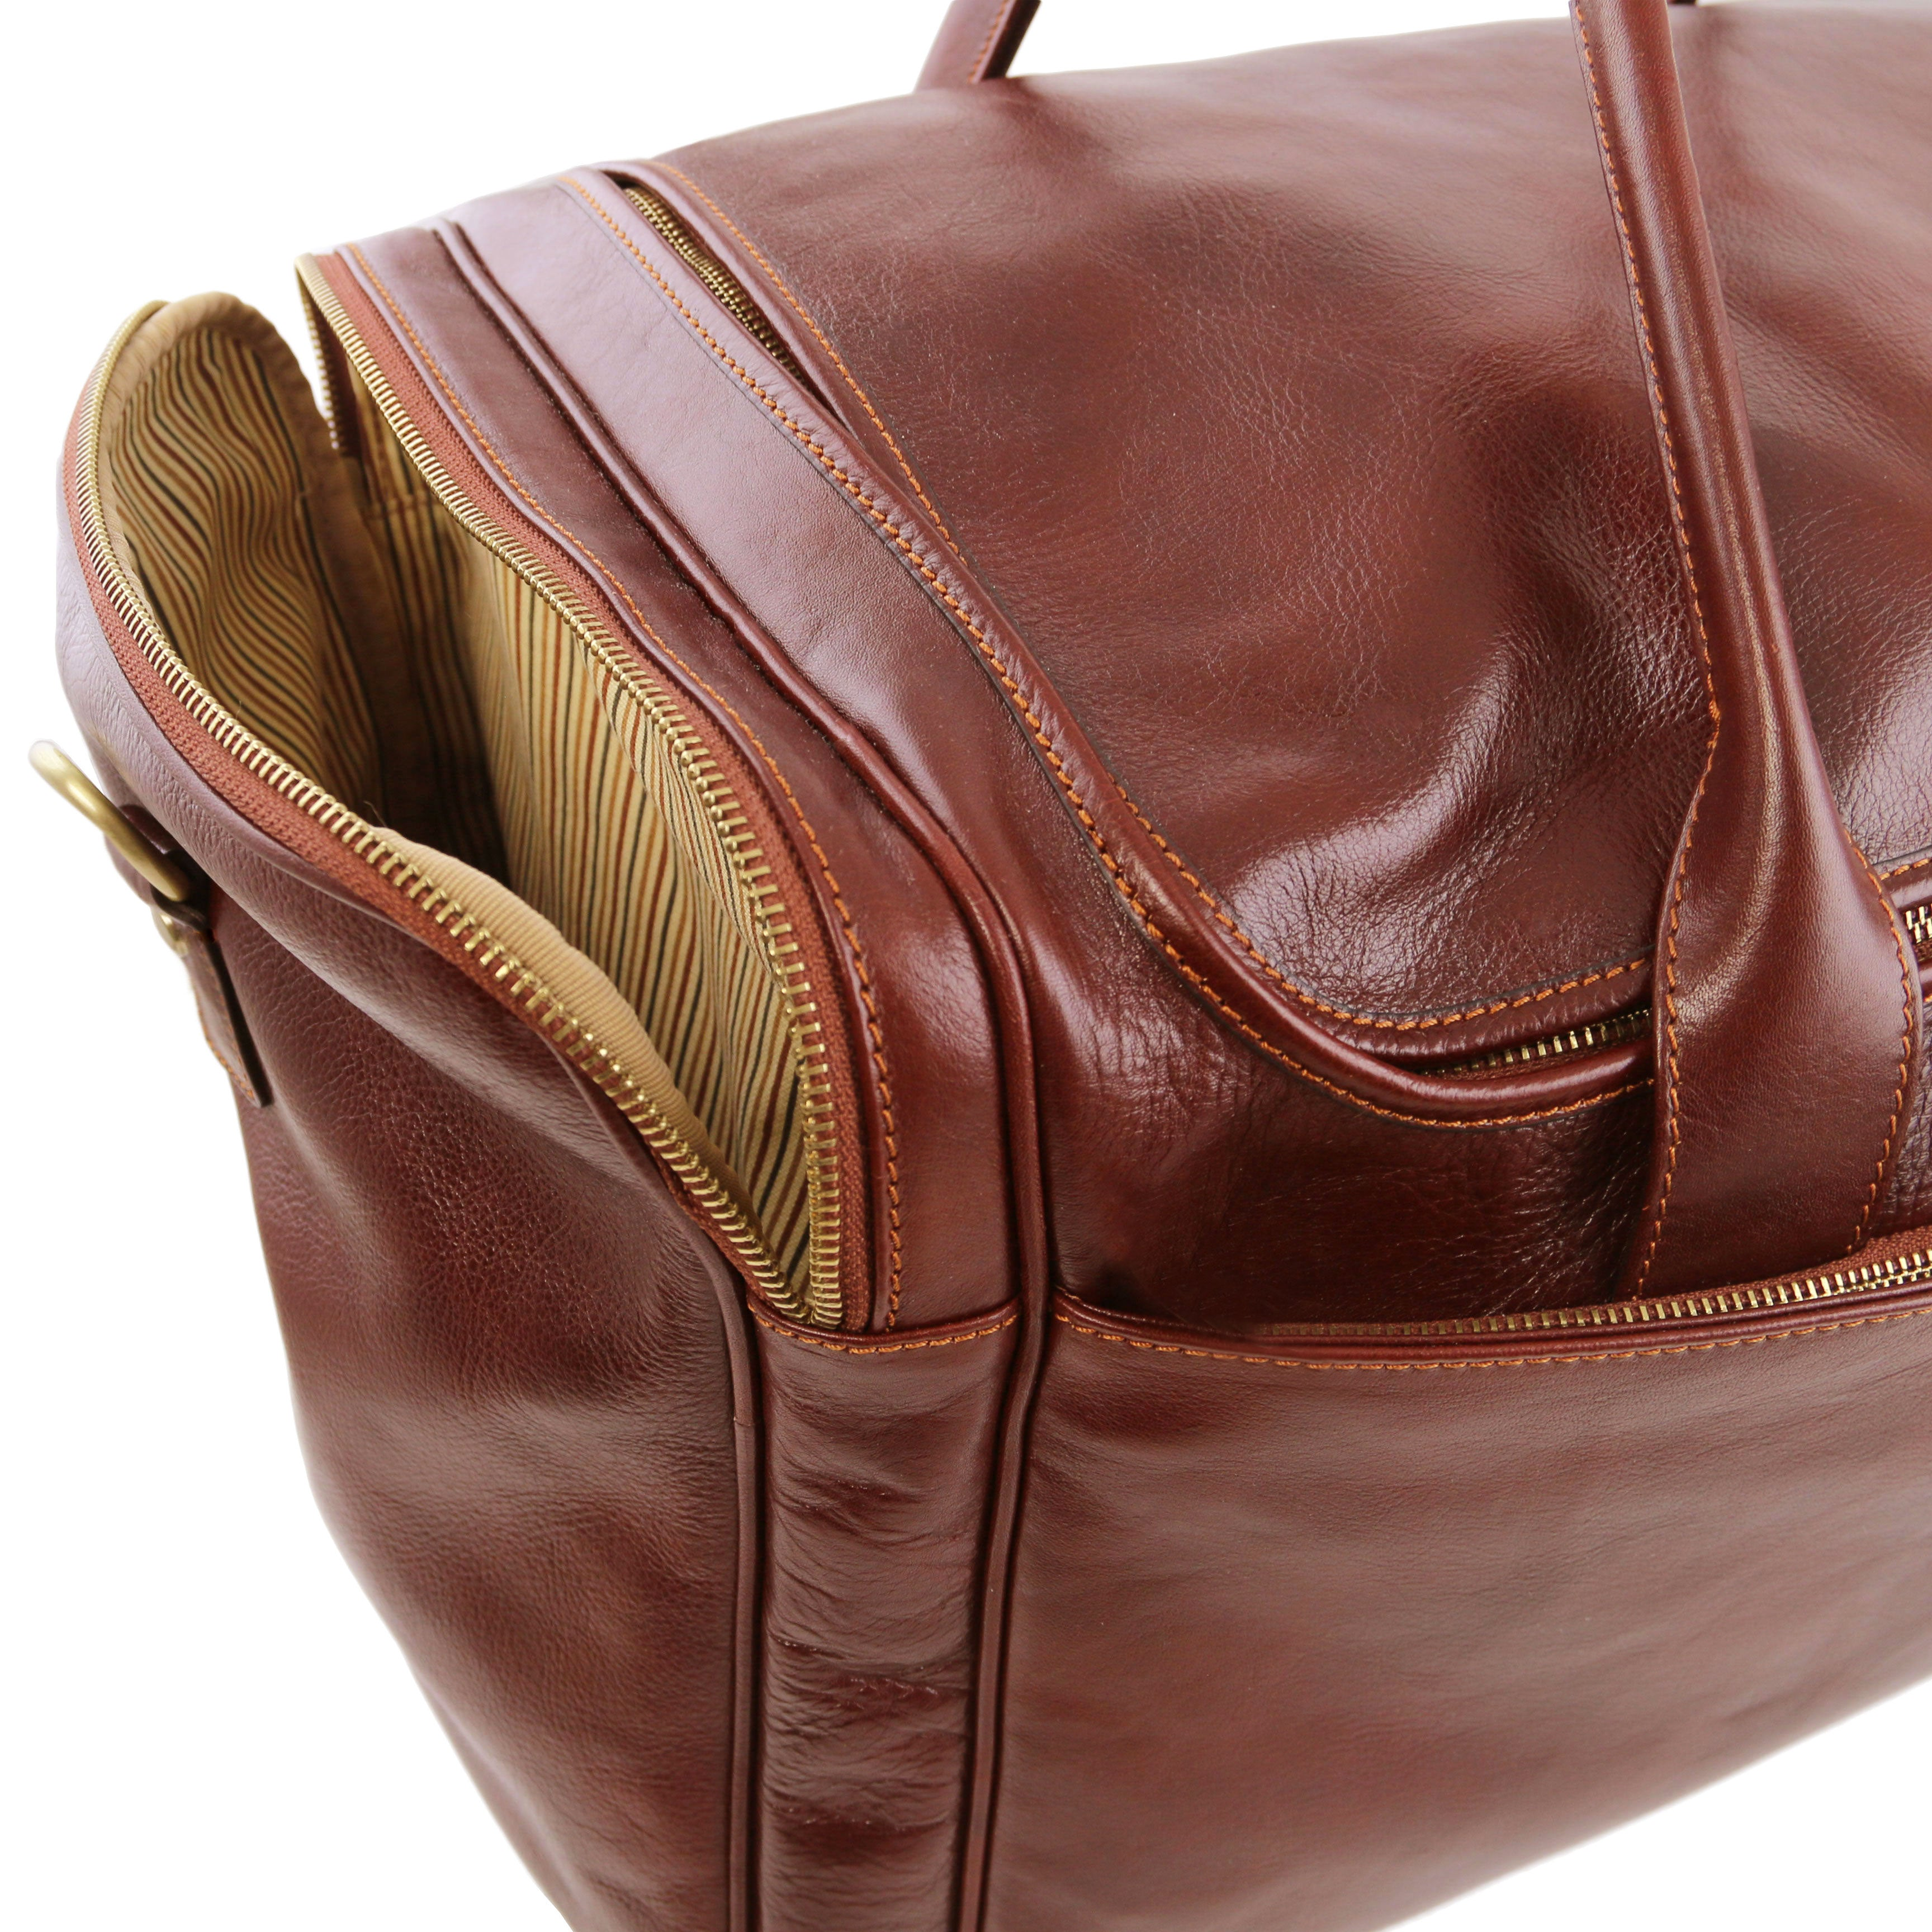 Voyager Travel leather bag with side pockets - Large size